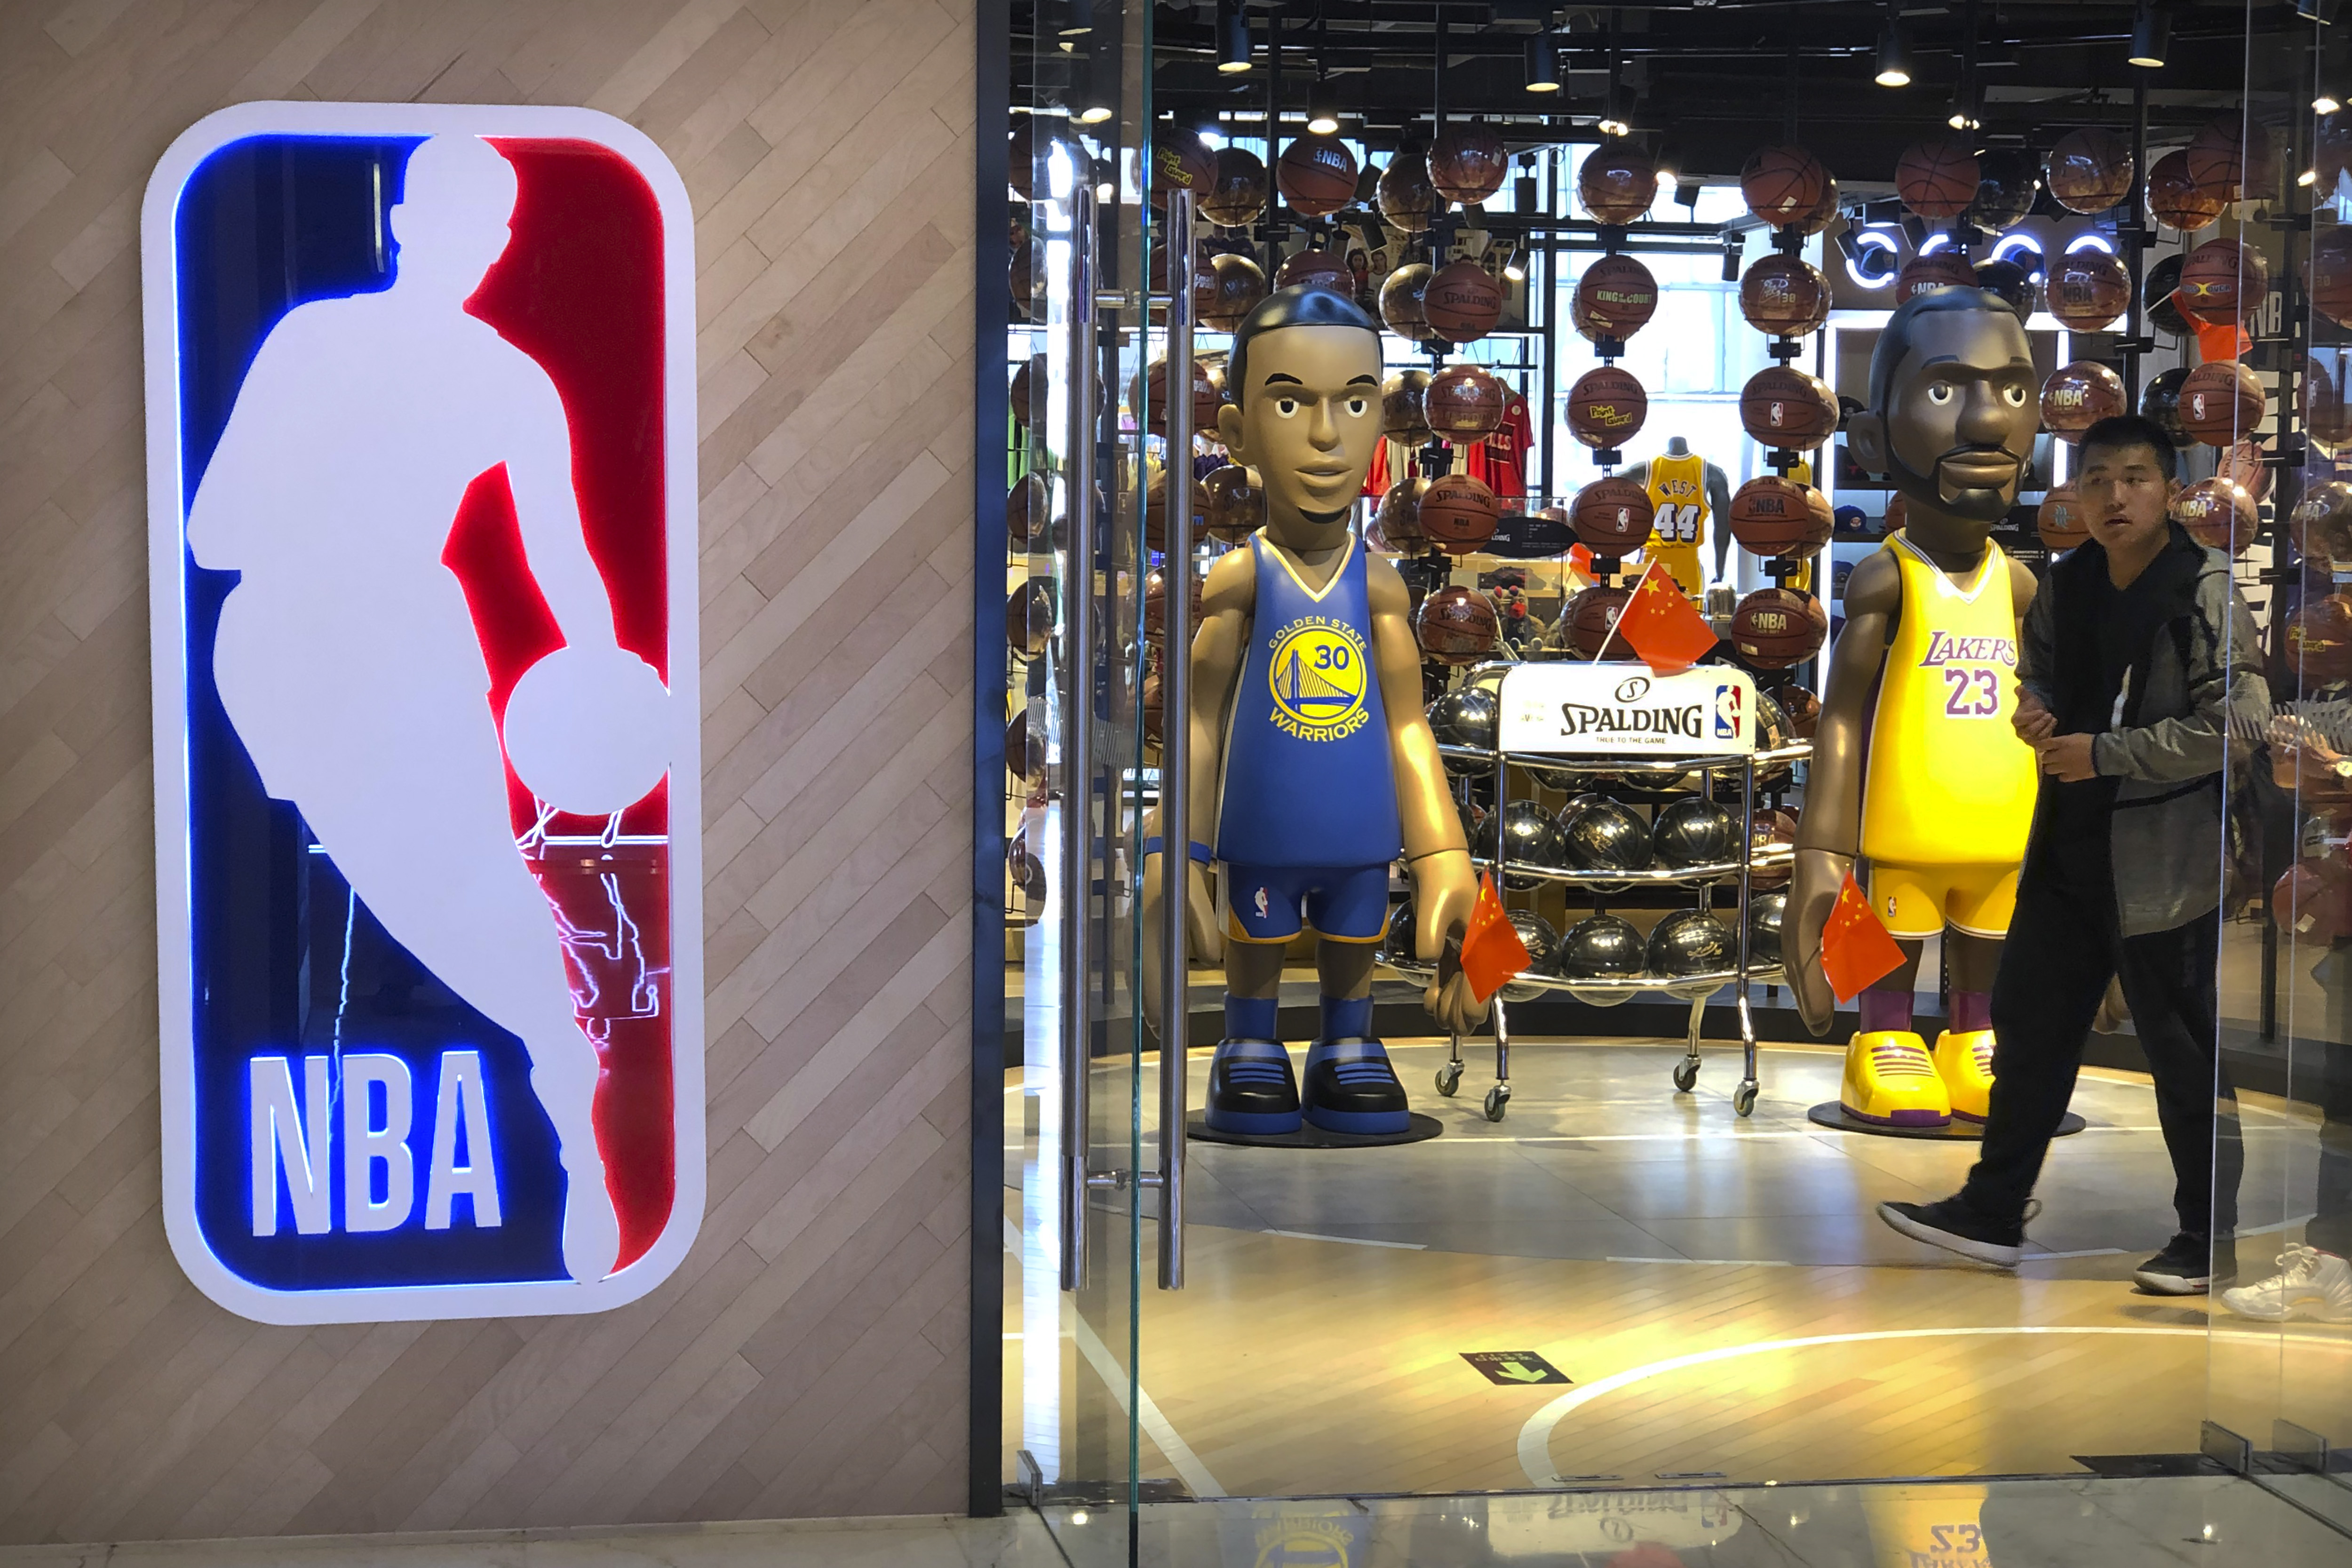 A man walks past statues of NBA players Stephen Curry of the Golden State Warriors, left, and Lebron James of the Los Angeles Lakers holding Chinese flags in the entrance of an NBA merchandise store in Beijing on Oct. 8, 2019.